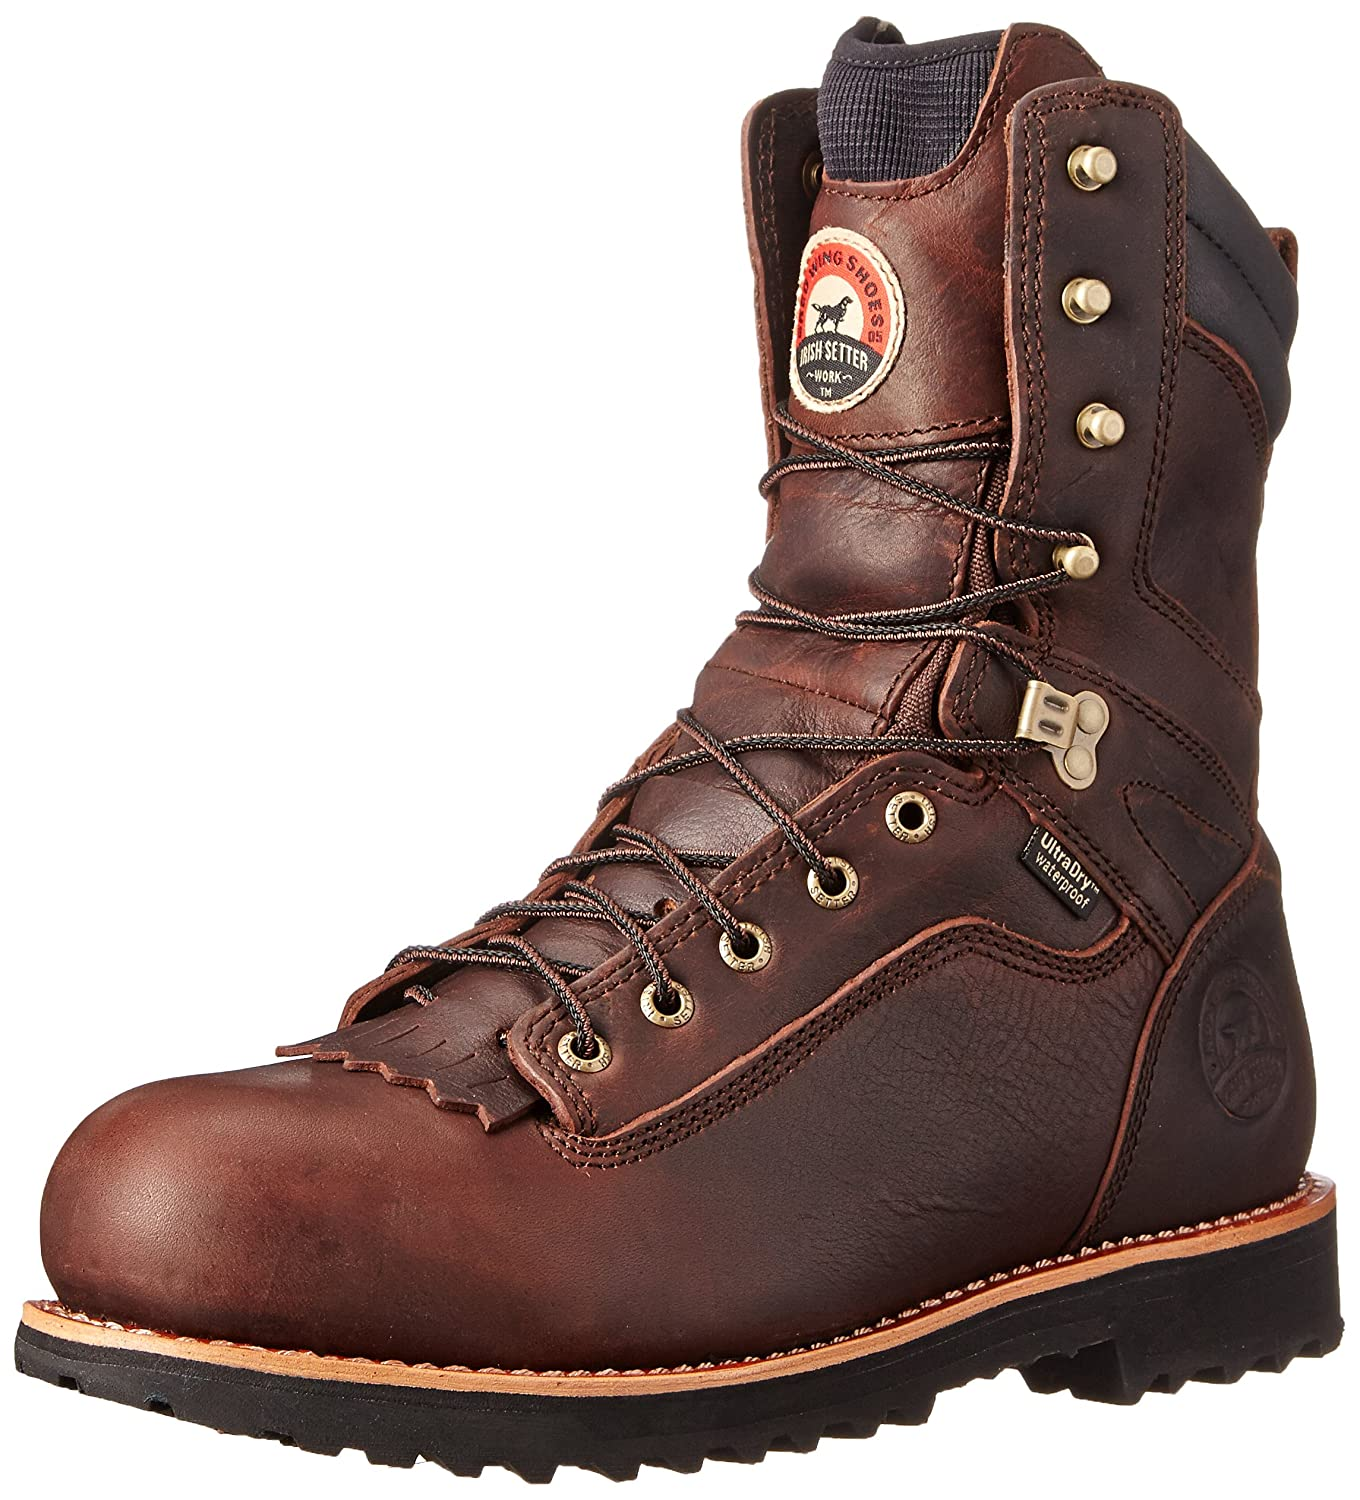 060dc41c929 Irish Setter Men's 83826 9